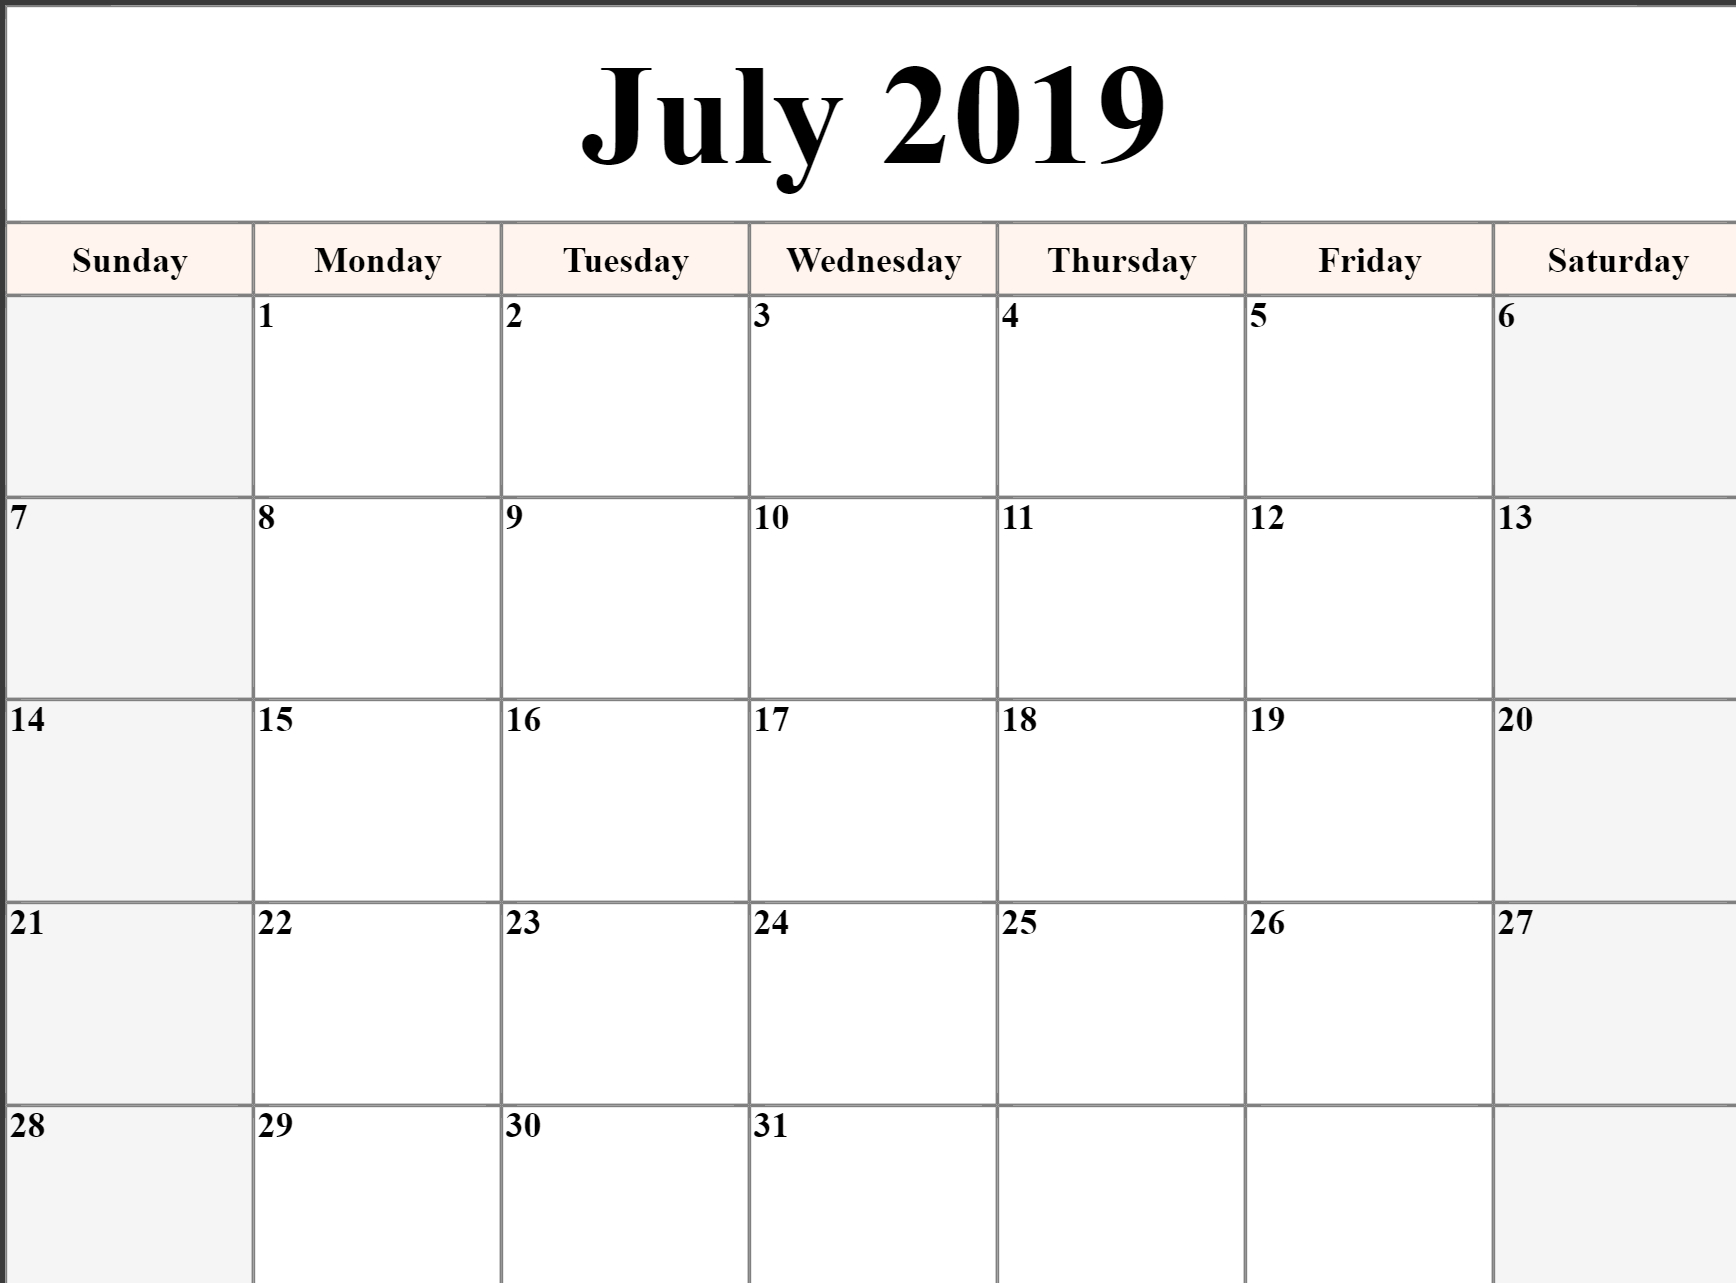 Free Printable July 2019 Calendar Download - Free Printable Calendar pertaining to Blank July Monthly Calendar